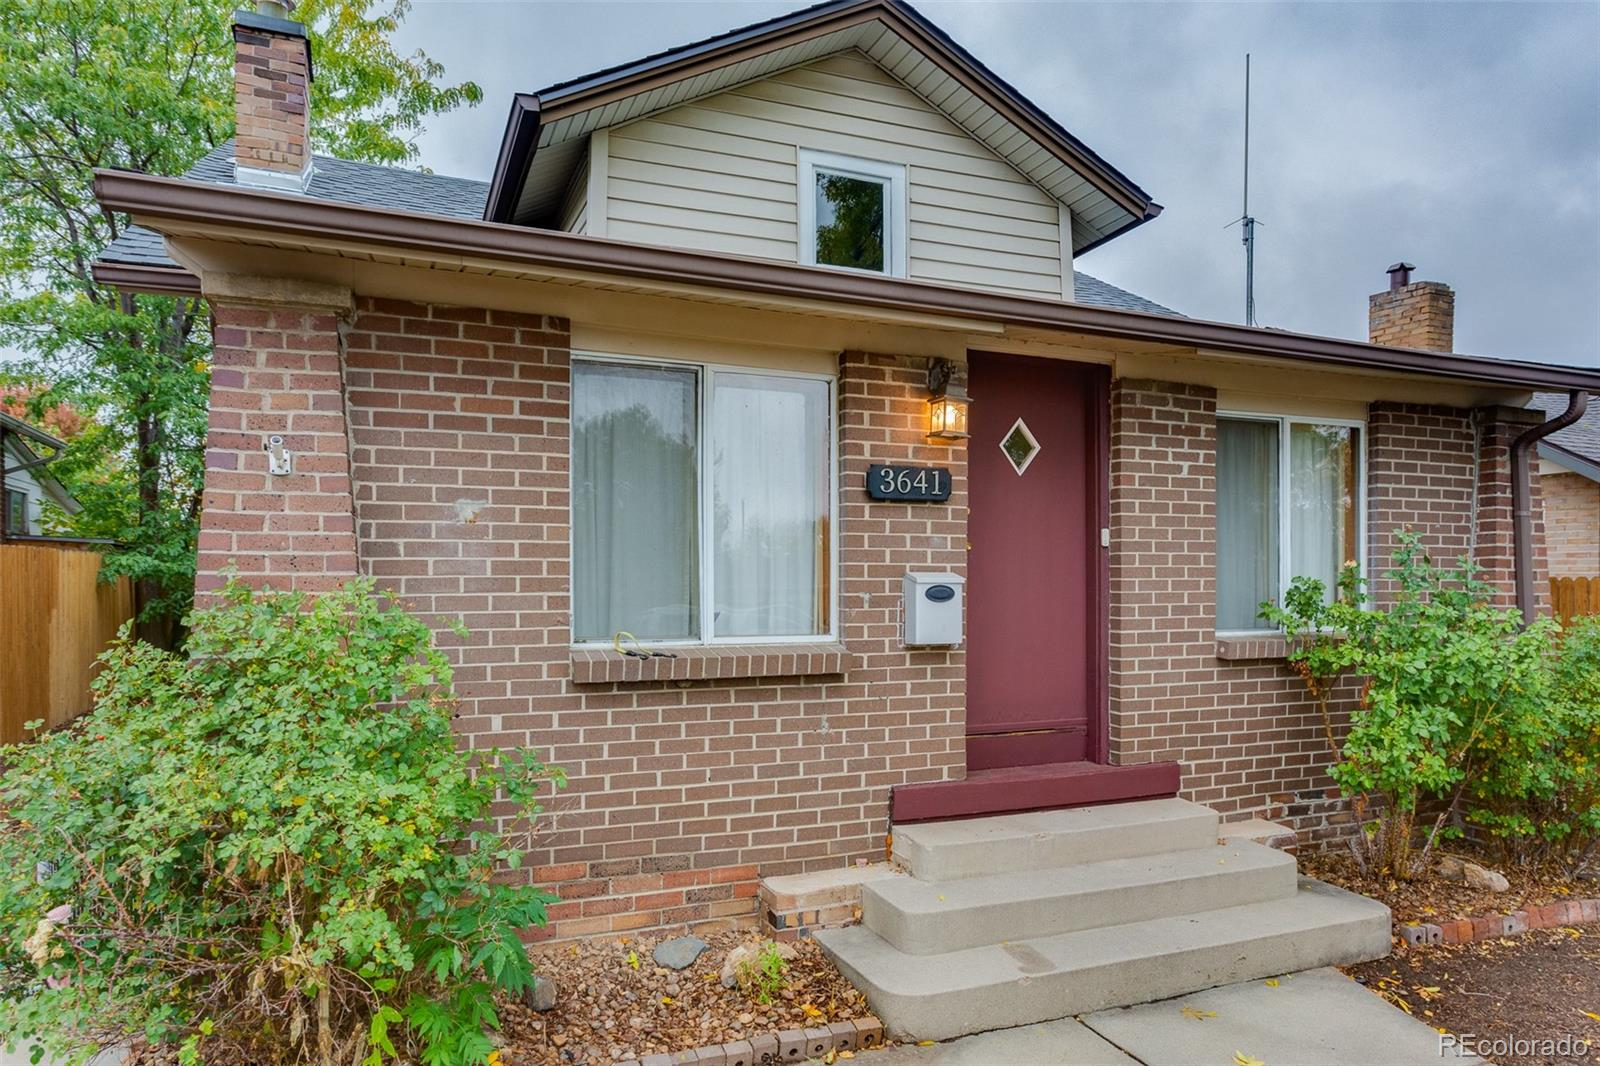 Check out this great home in the Clayton neighborhood close to public transportation and all that downtown Denver has to offer. This ranch style home has a large family room and main floor master bedroom. The garage is large enough to fit two cars and still have room for all of your mountain equipment. There is plenty of off street parking for your toys located on the concrete apron around the garage. The cozy patio in the back yard comes with a hot tub. The roof is two years old, with impact resistant shingles.